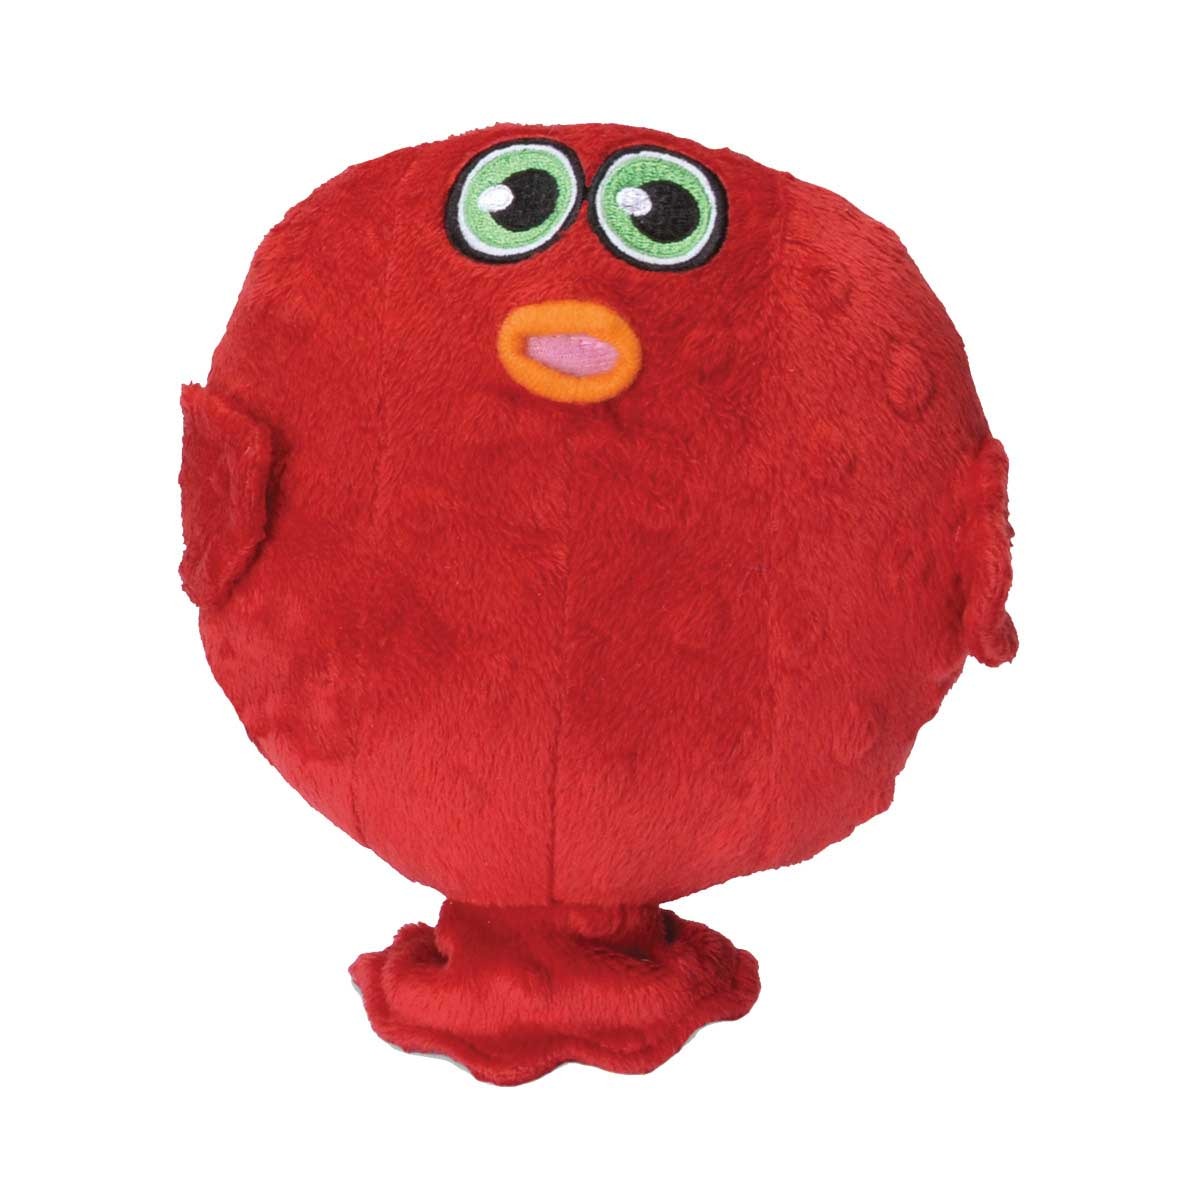 Hear Doggy Plush Blow Fish Small Toy Dog 7 inches